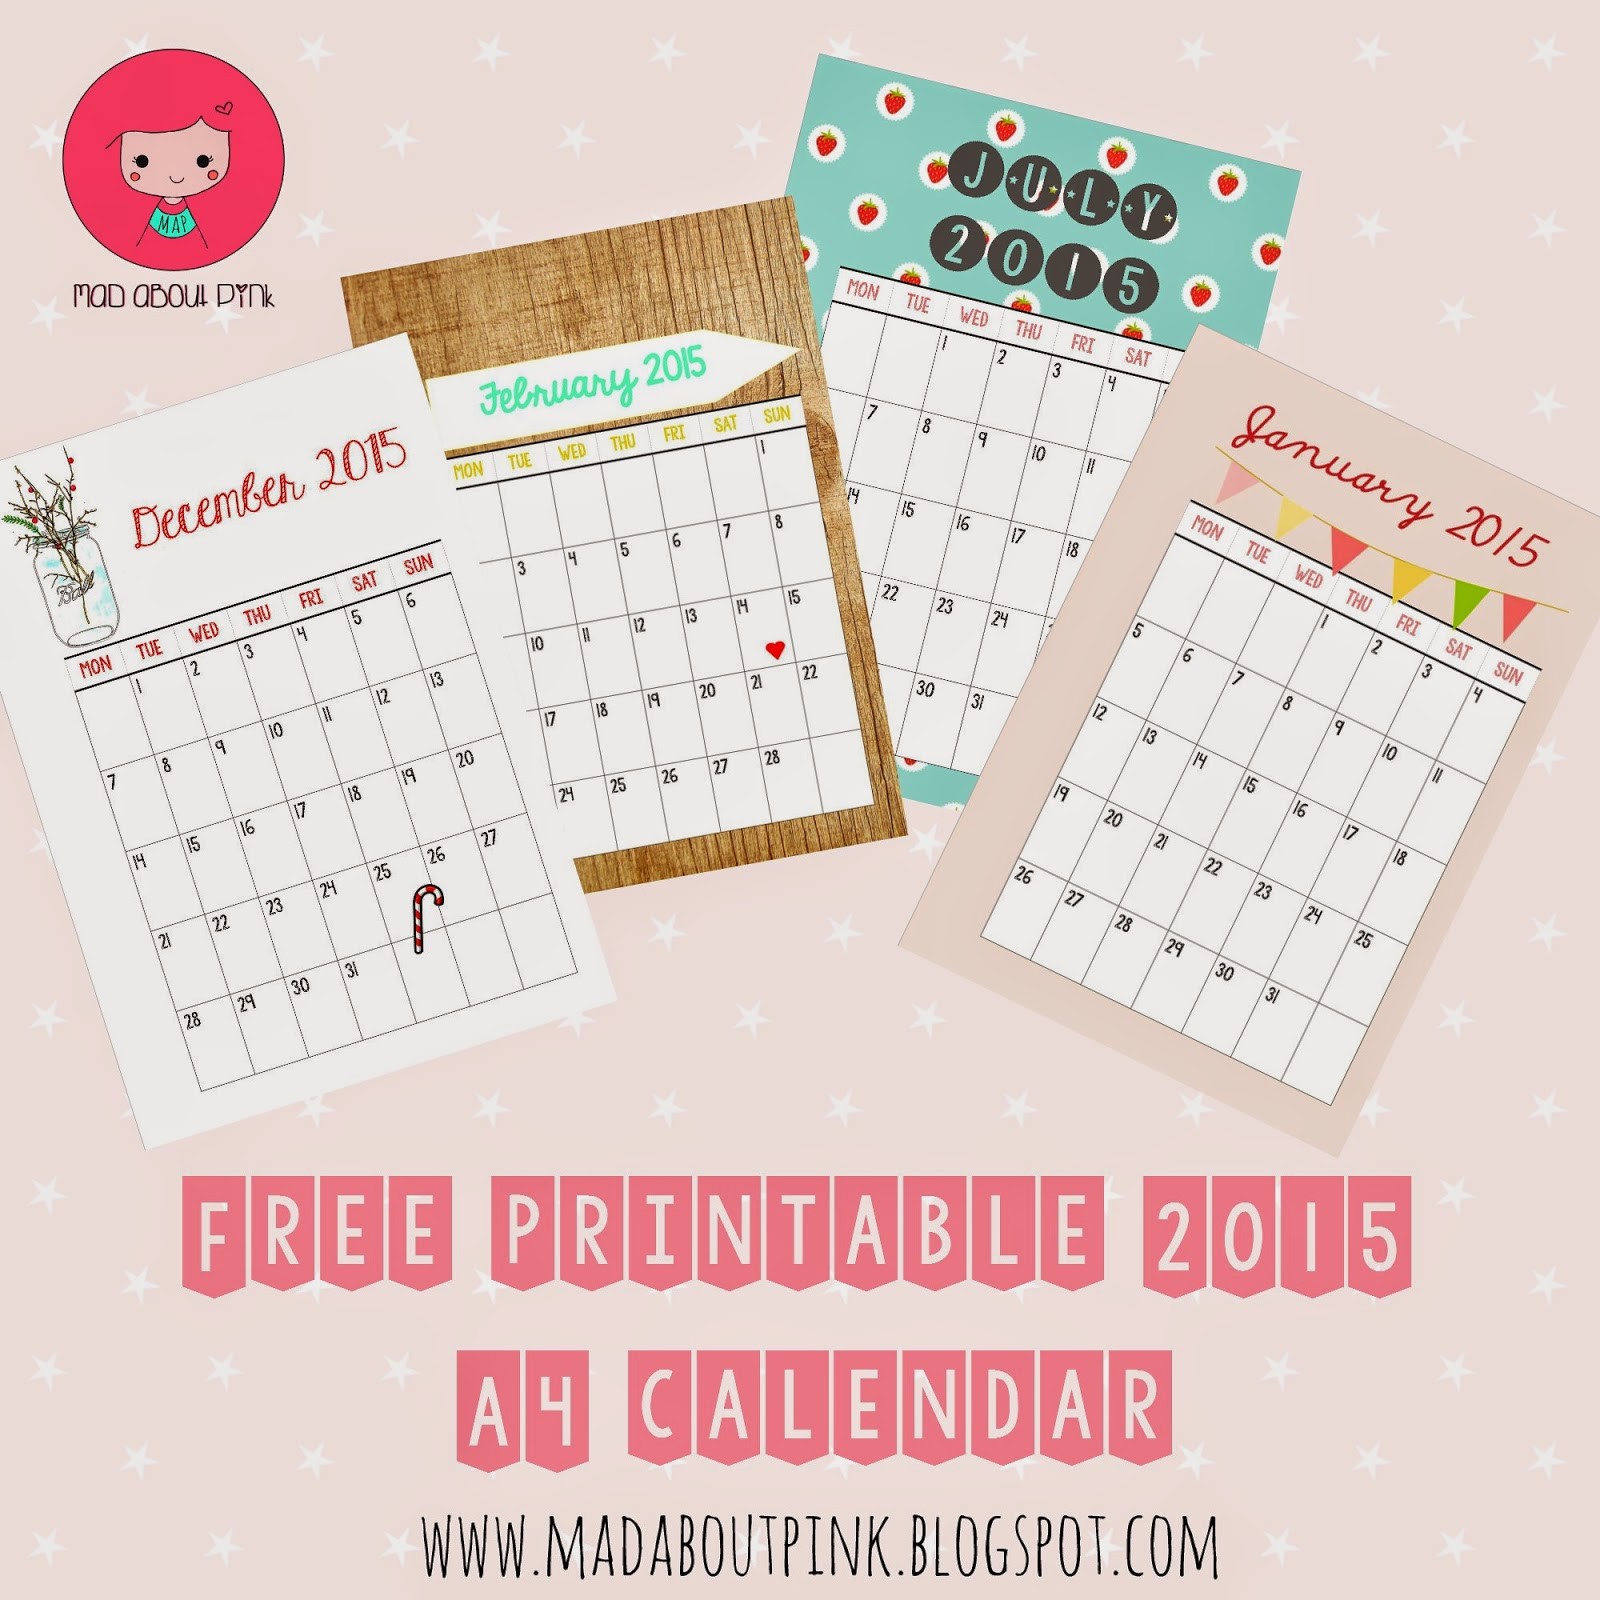 Famous 1.25 Button Template Tall 16 Year Old Resumes Clean 1st Birthday Invitations Templates 2 Inch Hexagon Template Young 2 Month Calendar Template Fresh2 Page Brochure Template Mad About Pink: 2015 Free Printable A4 Calendar   Must Have If You ..